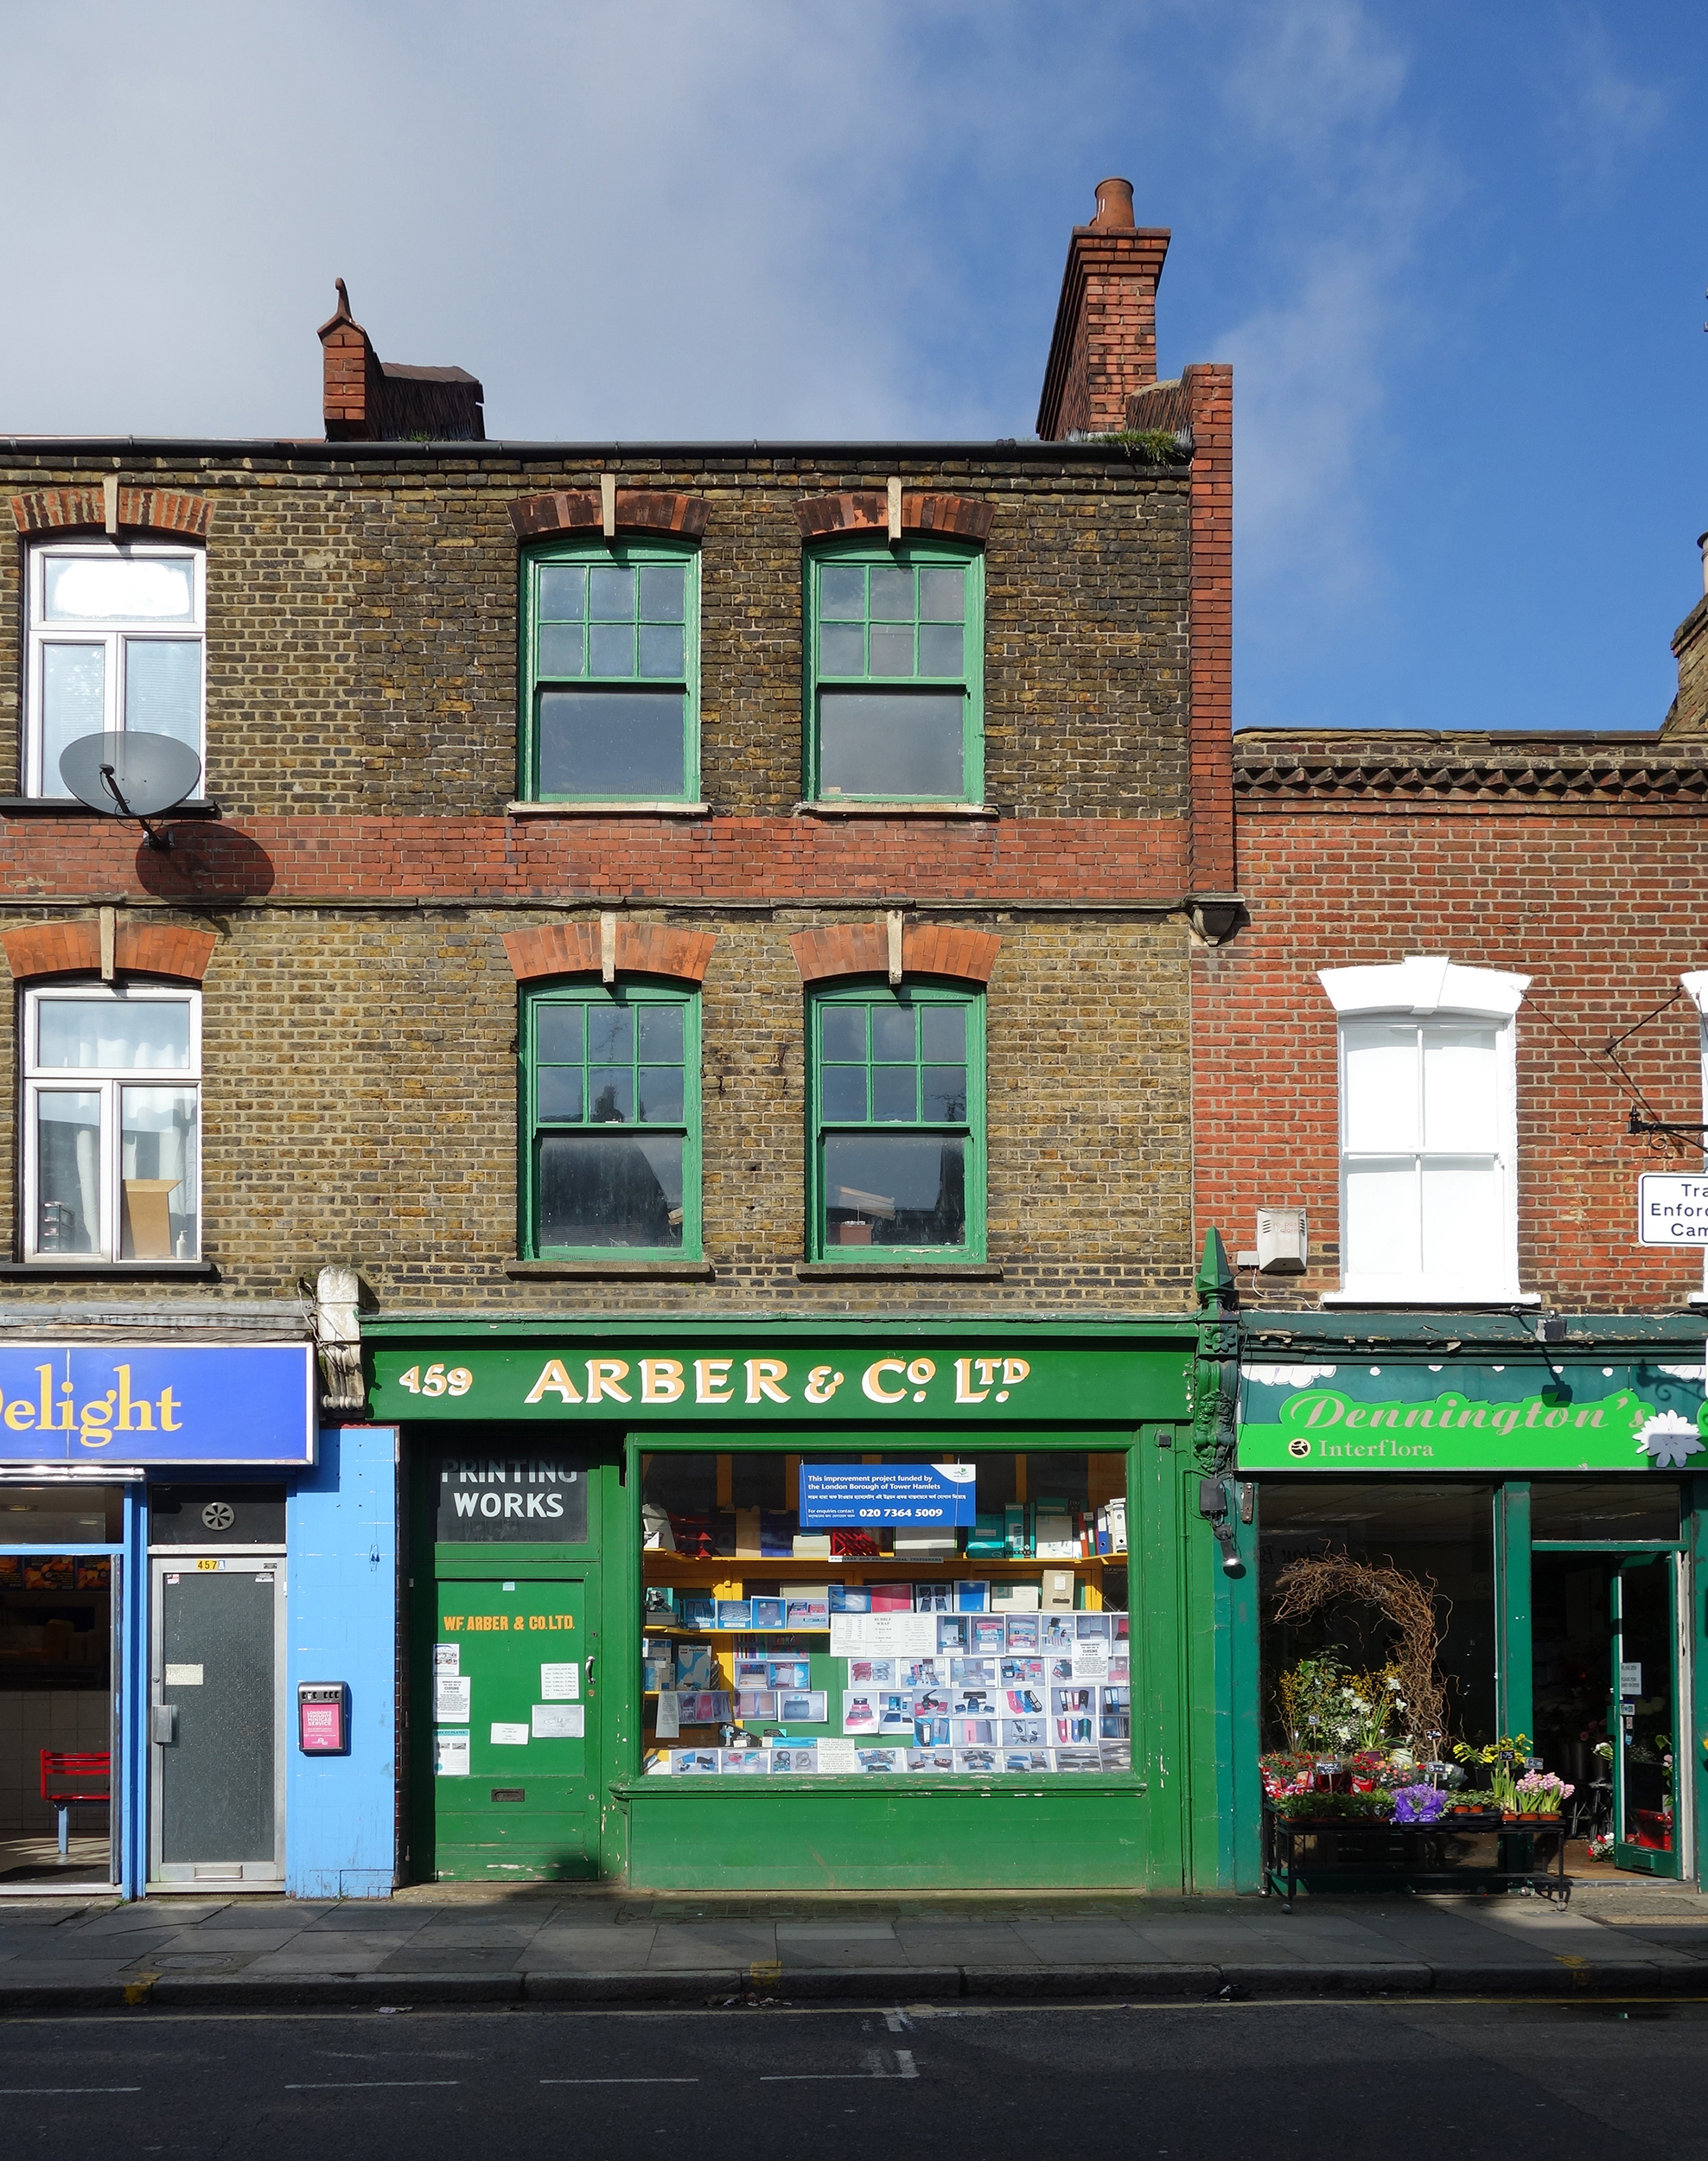 View of Arber & Co shopfront